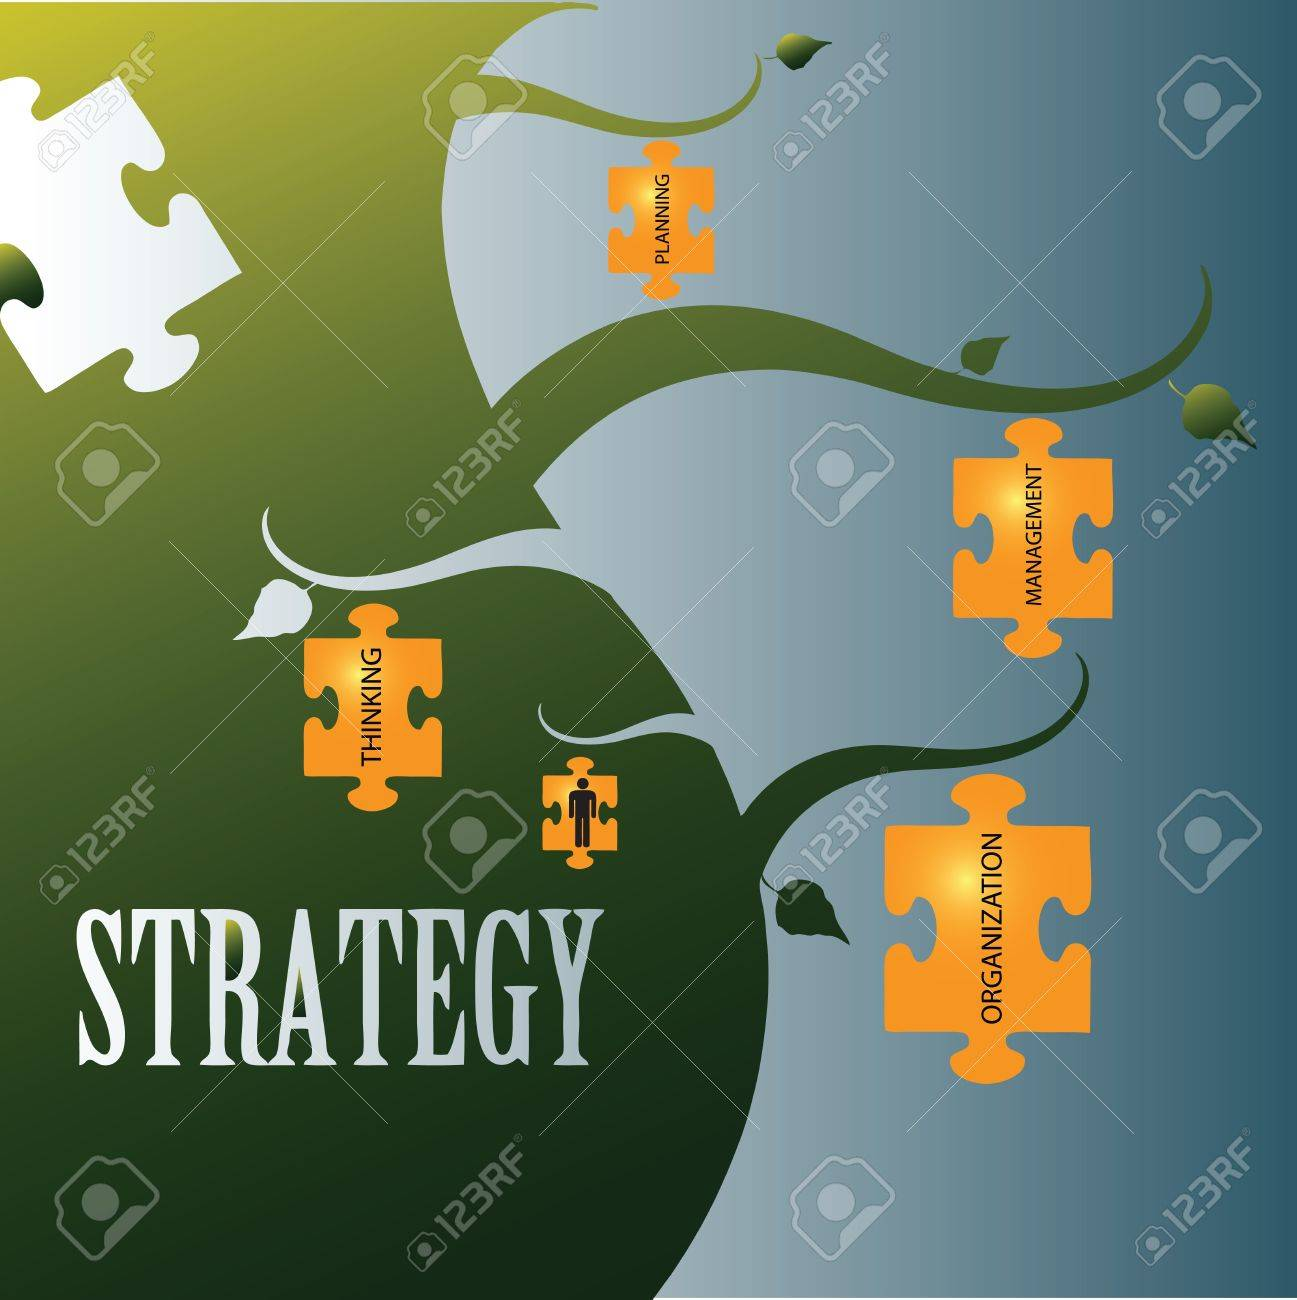 Vector illustration on the topic of strategy with related words in jigsaw puzzles. Stock Vector - 16060074